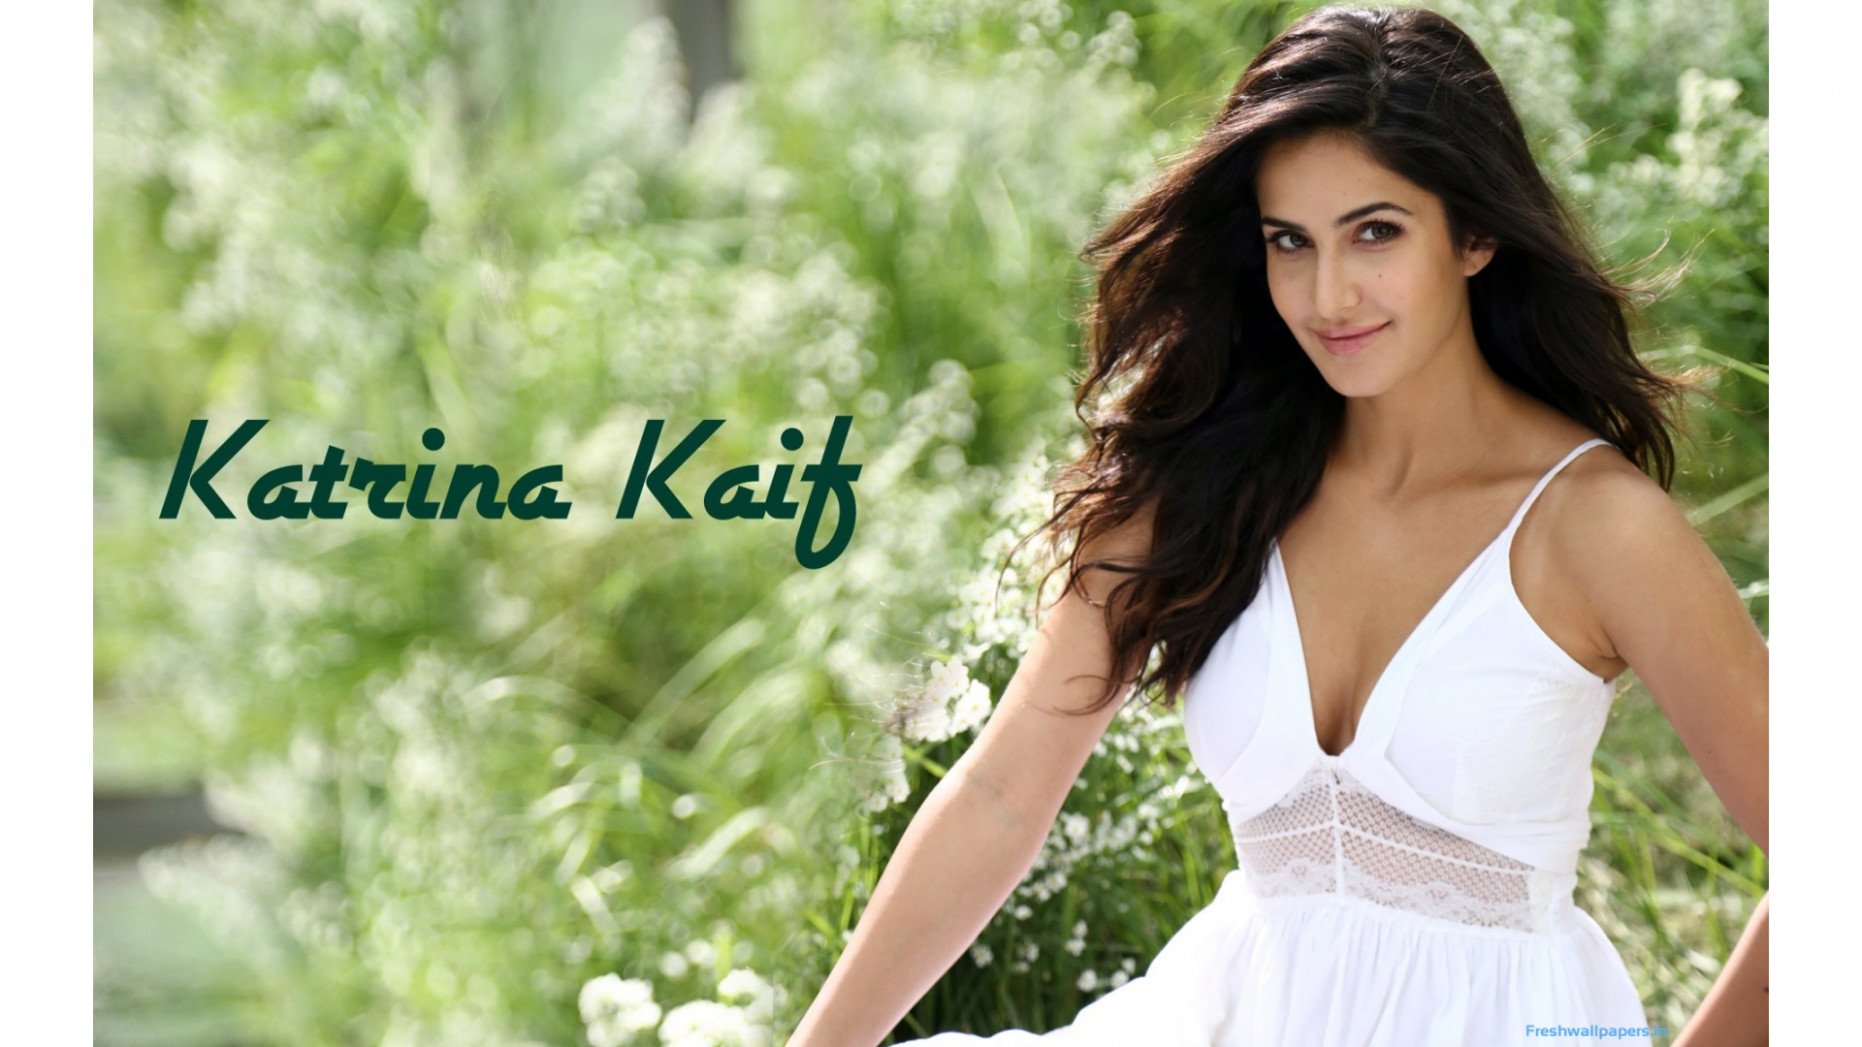 Katrina Kaif Pretty Bollywood Indian Girl Hd Wallpaper ...